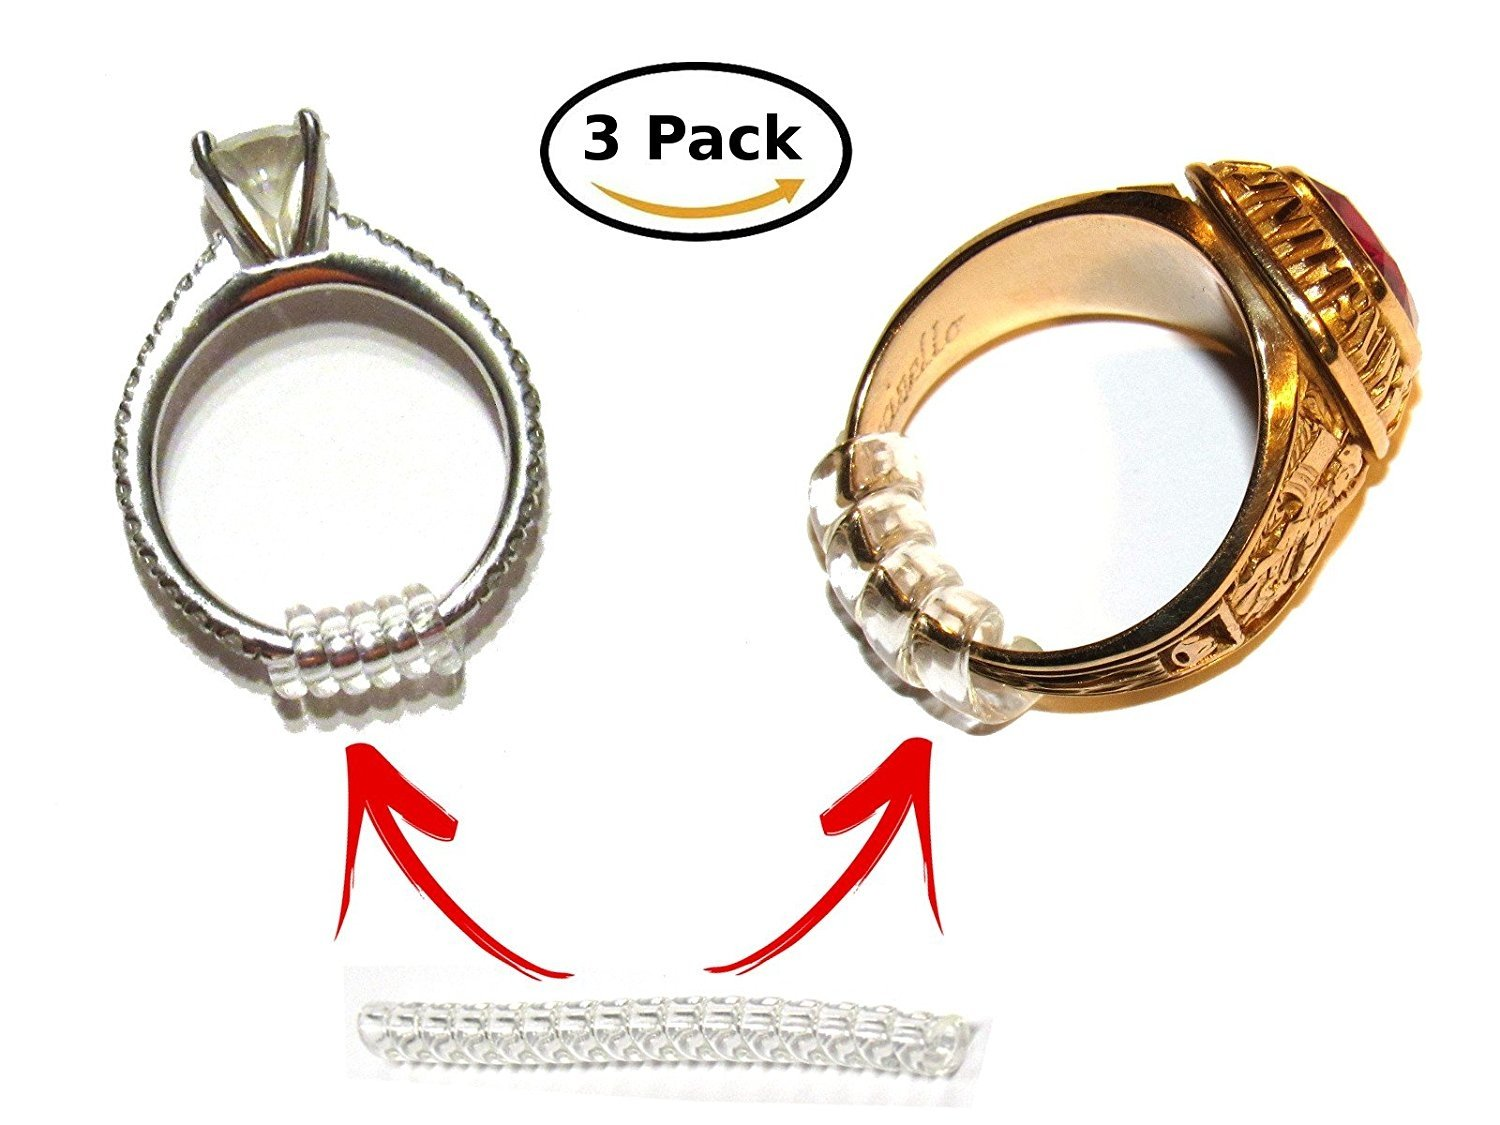 The Original Ring Adjusters Assorted Sizes 3 X Ring Snuggies